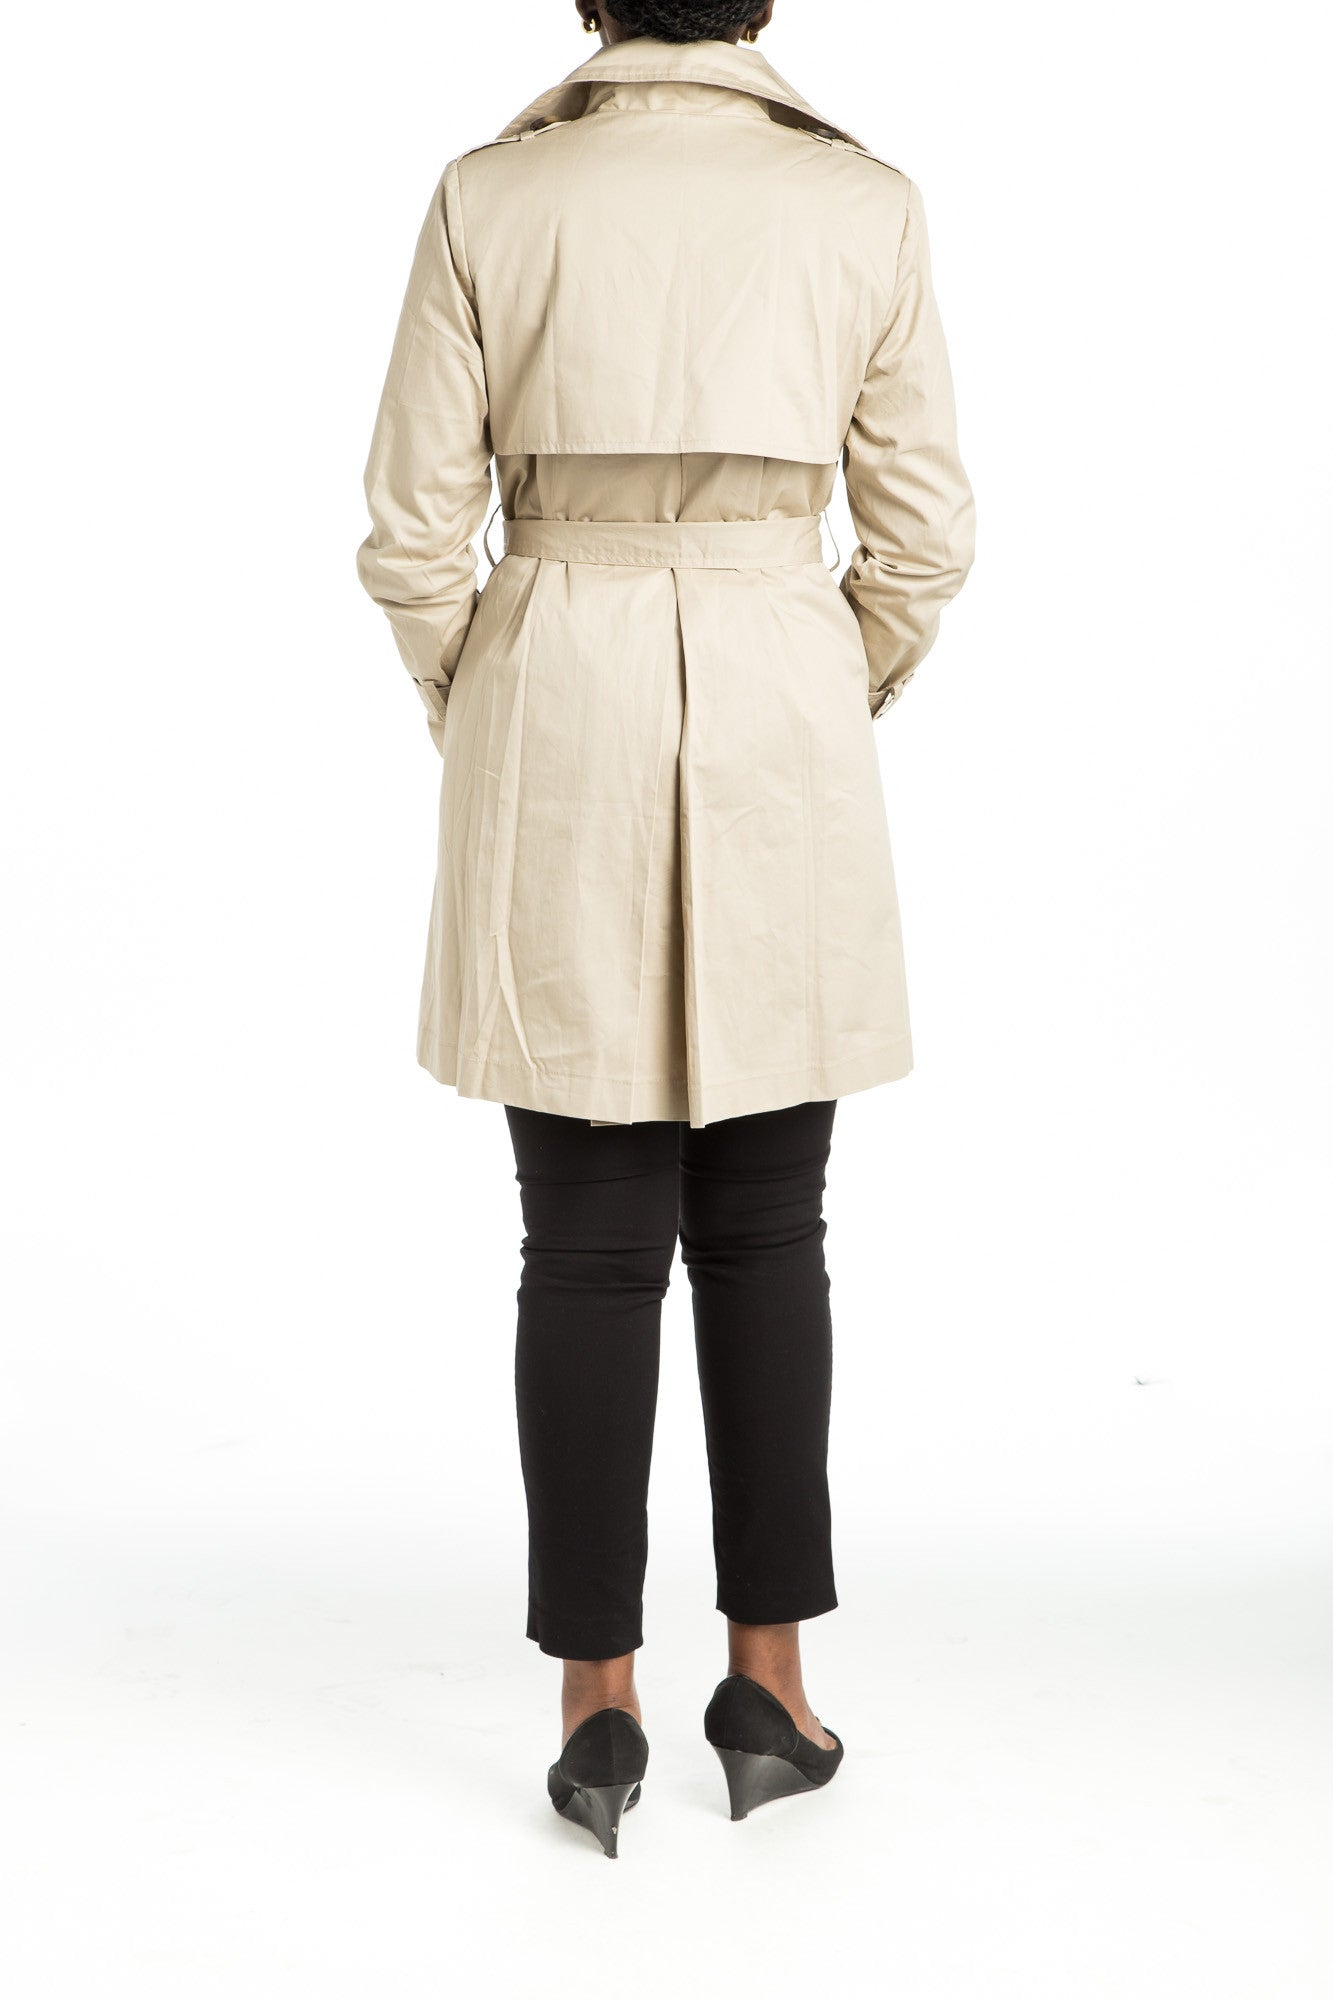 SHERA Trench Coat - 2 colors available - Mademoiselle Veste - 4